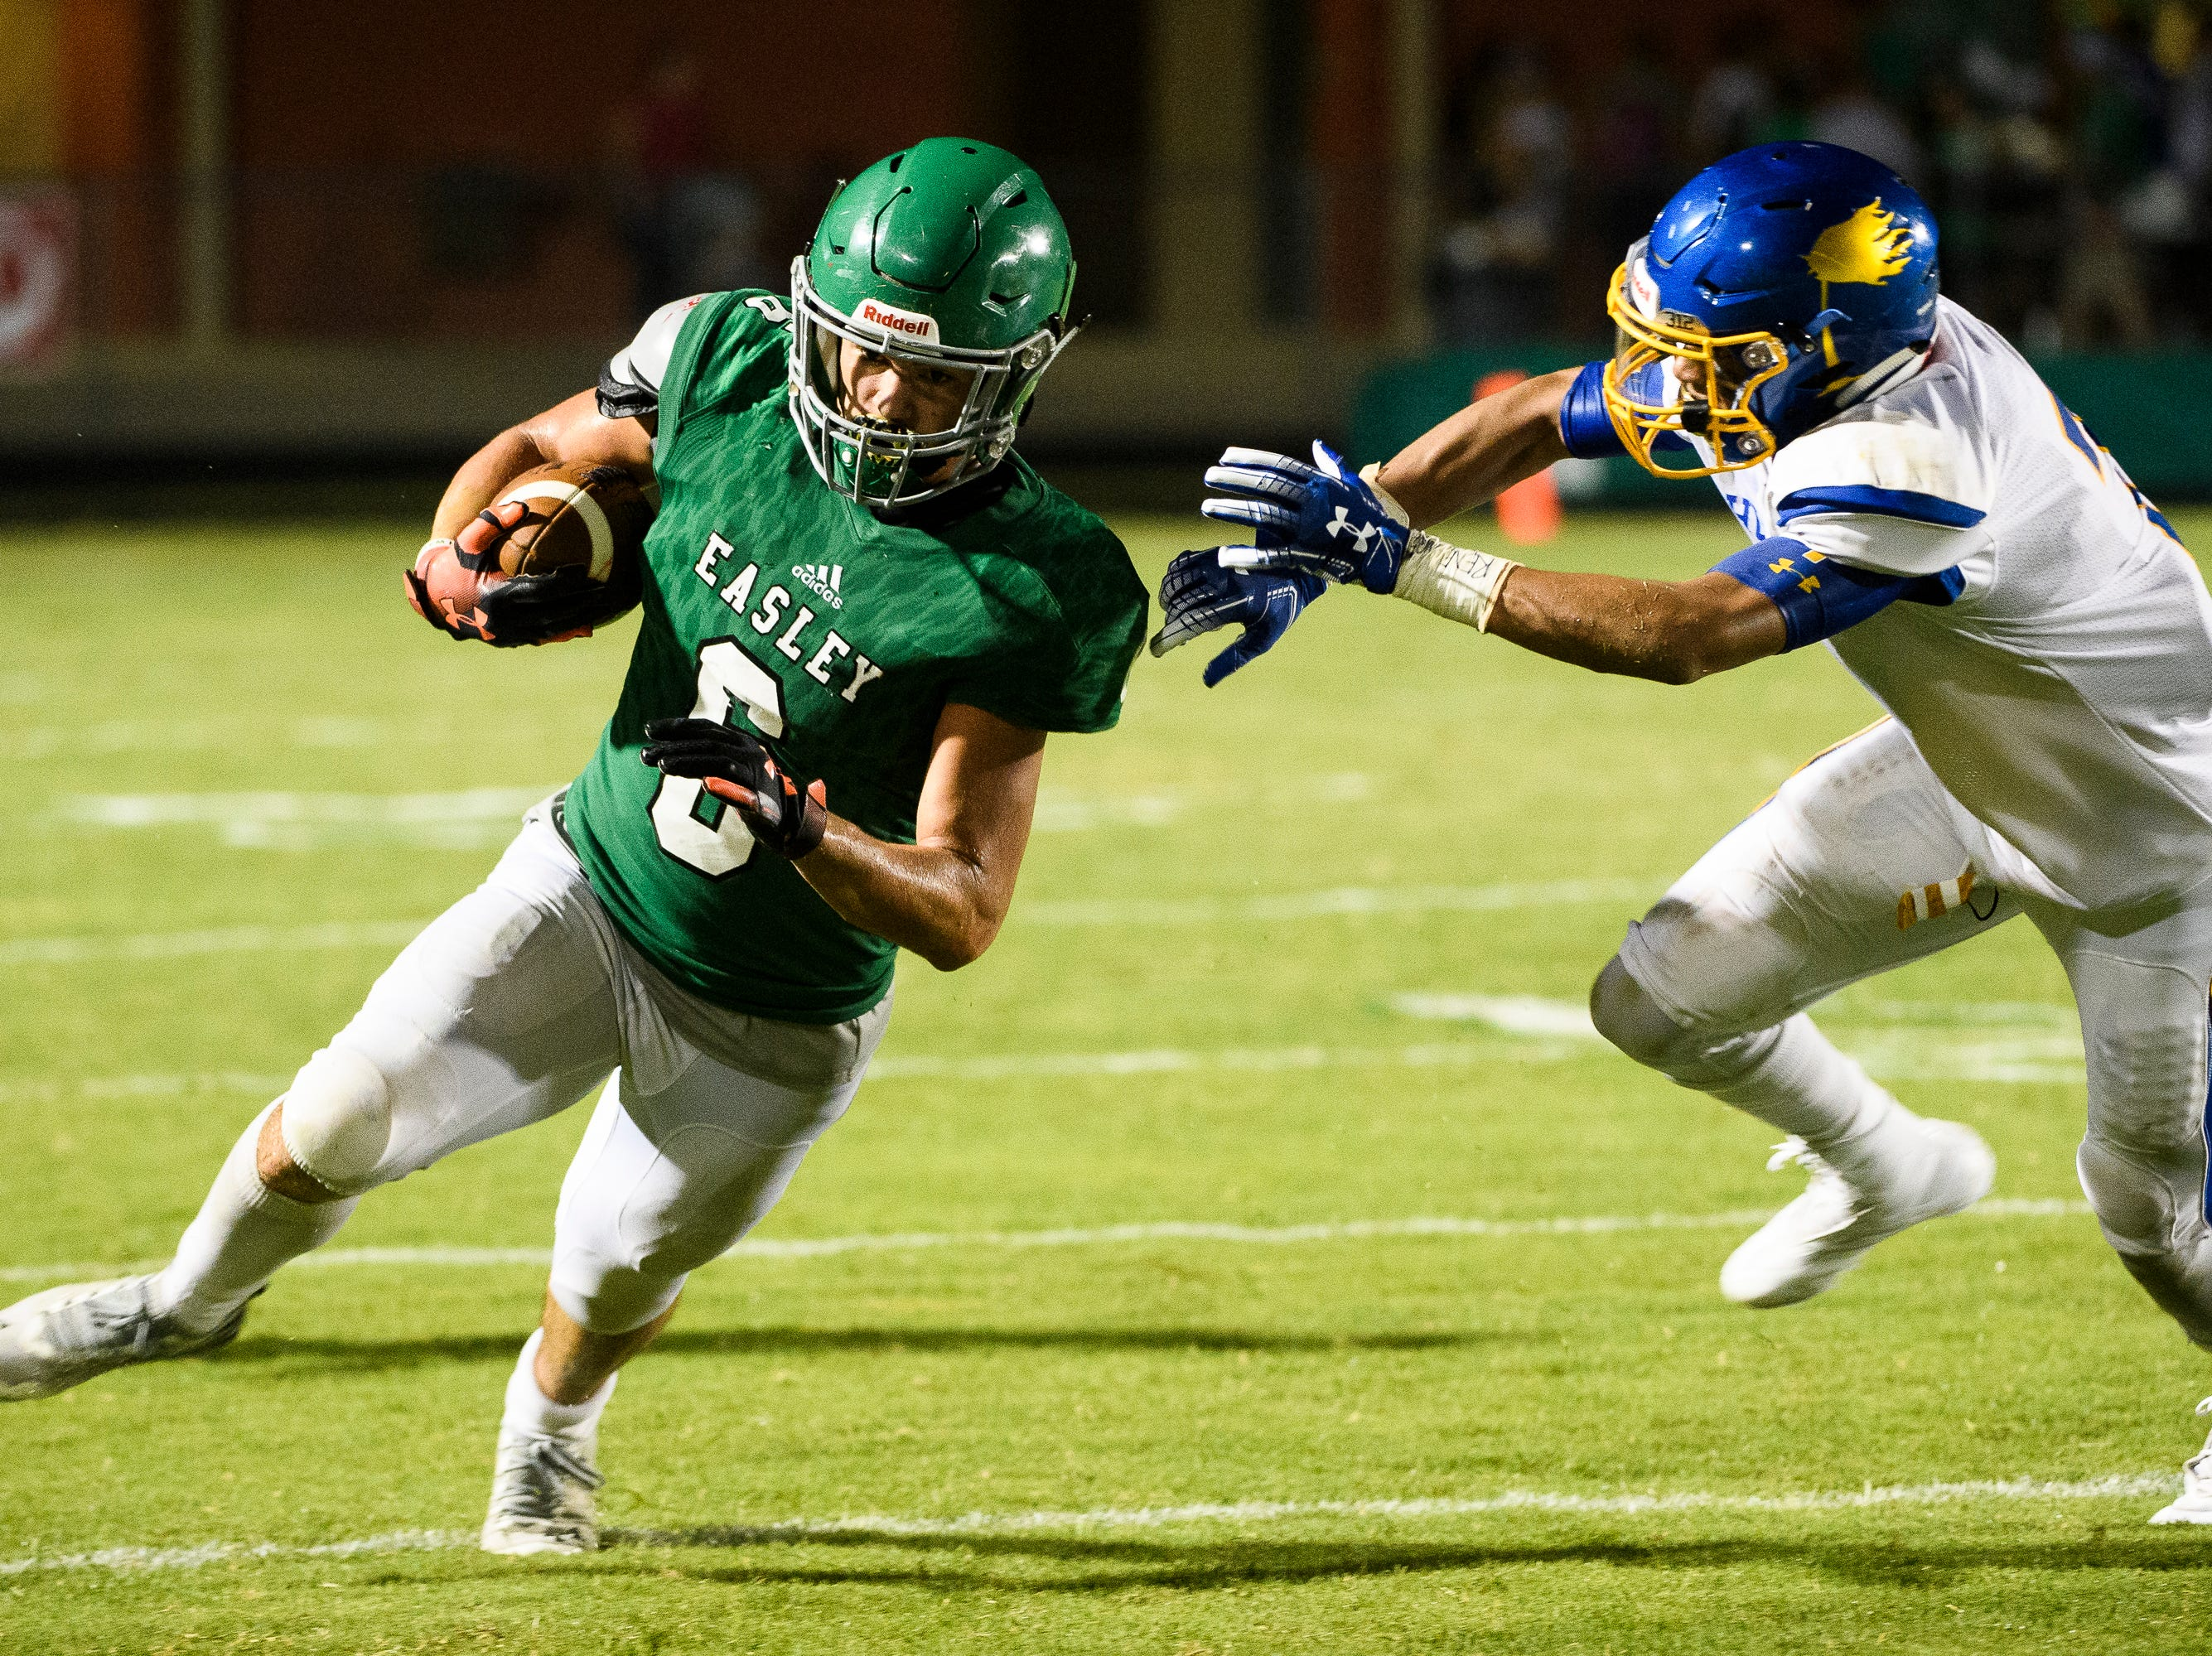 Easley's Dylan Lyda (6) attempts to evade Wren's Anthony Goodwin (7) on Friday, Sept. 7, 2018.